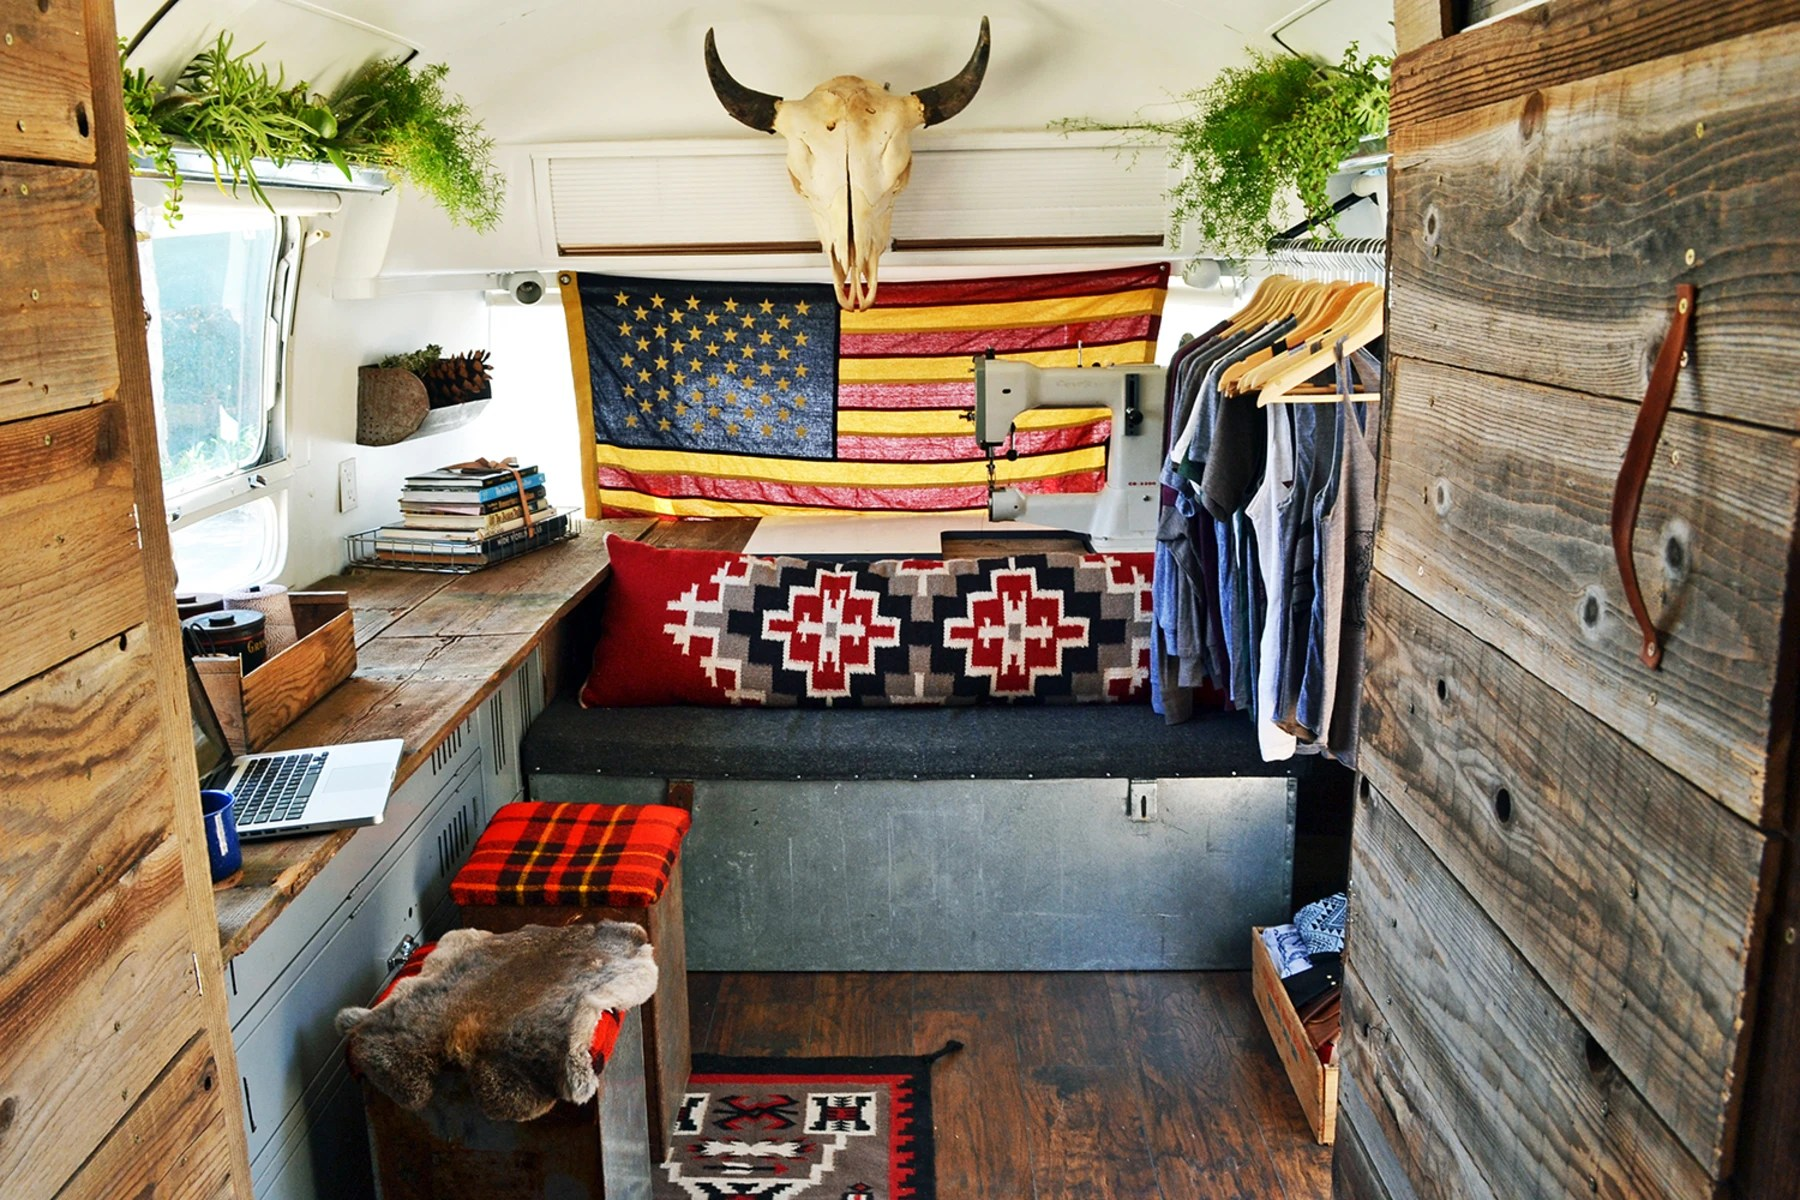 See Inside The Cozy Airstream Trailer A Father And